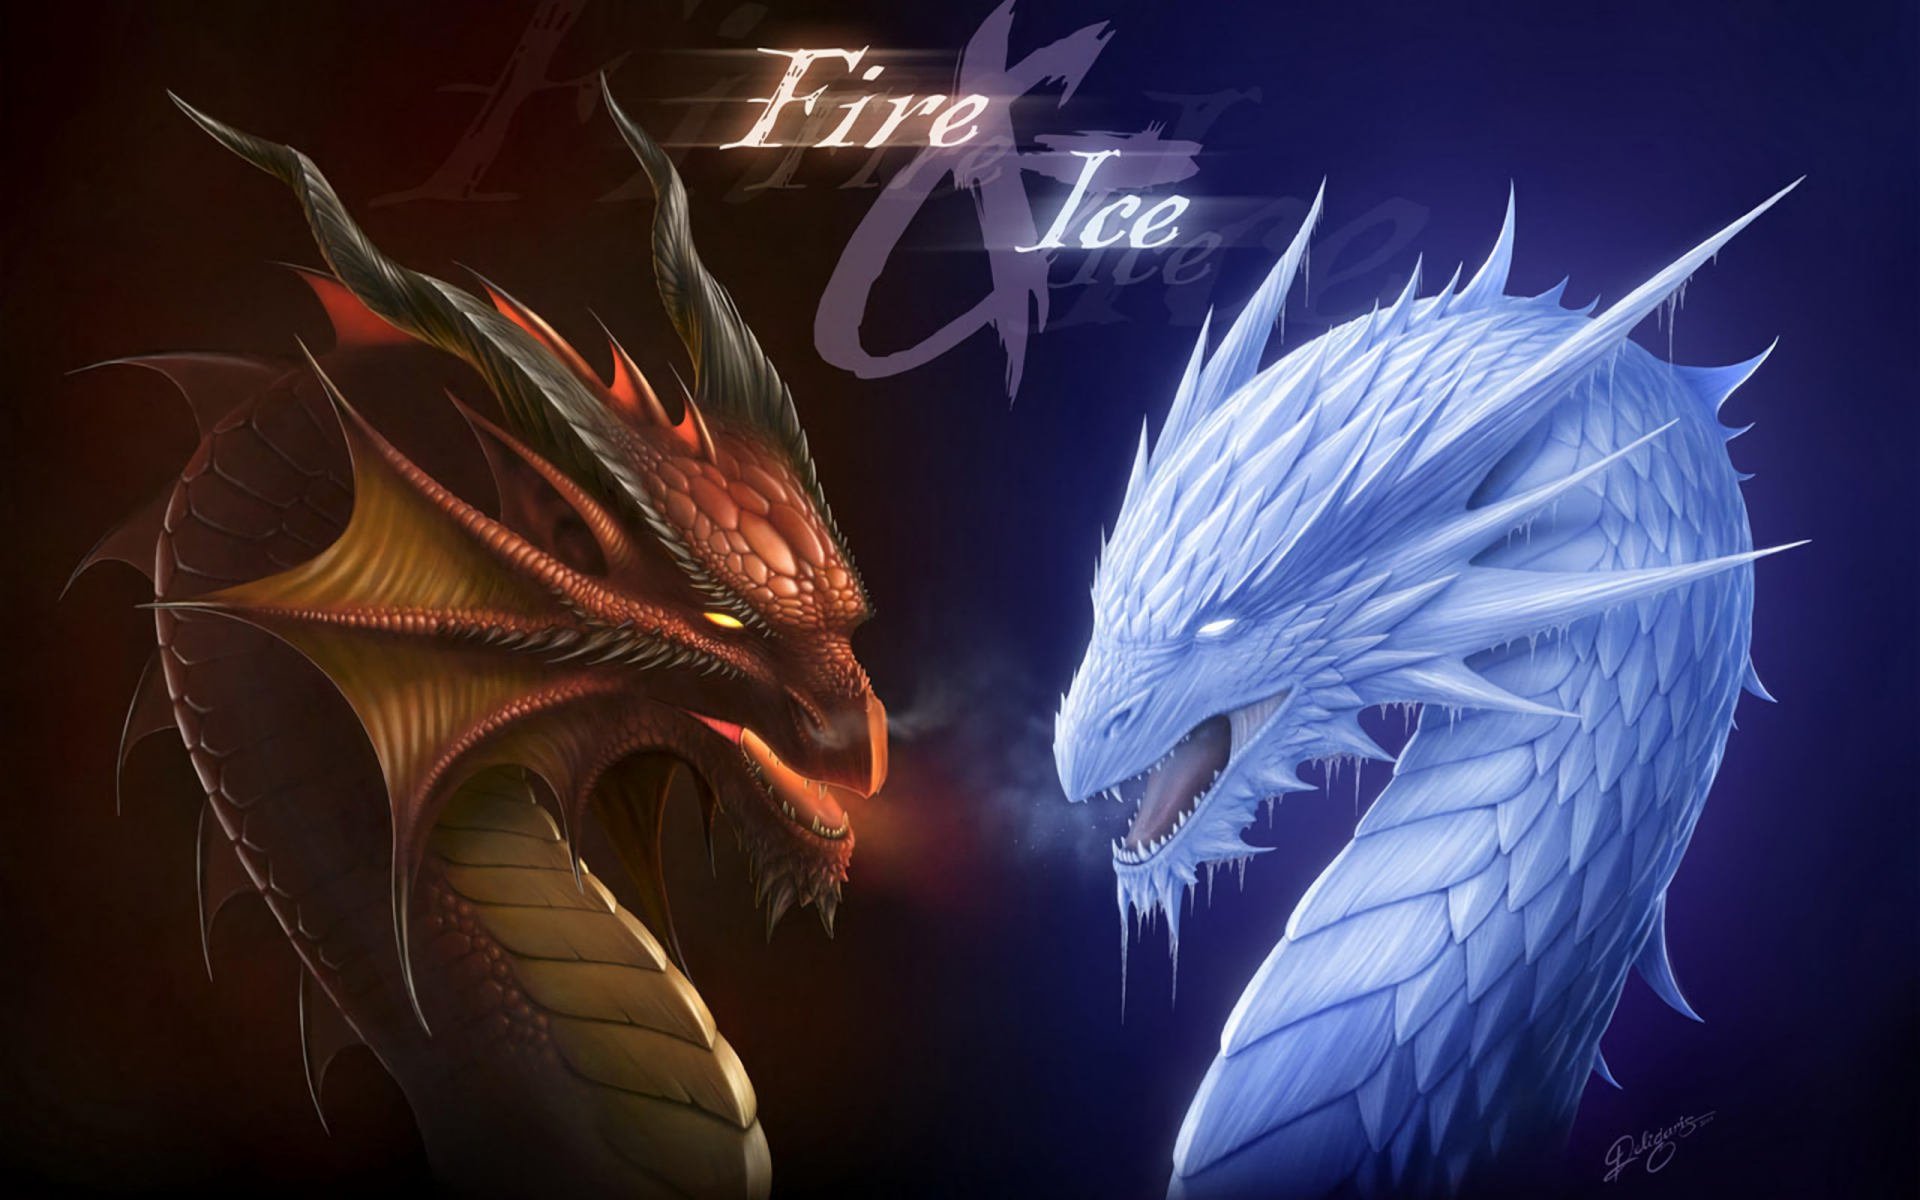 Fire And Ice Dragons Fighting - HD Wallpaper